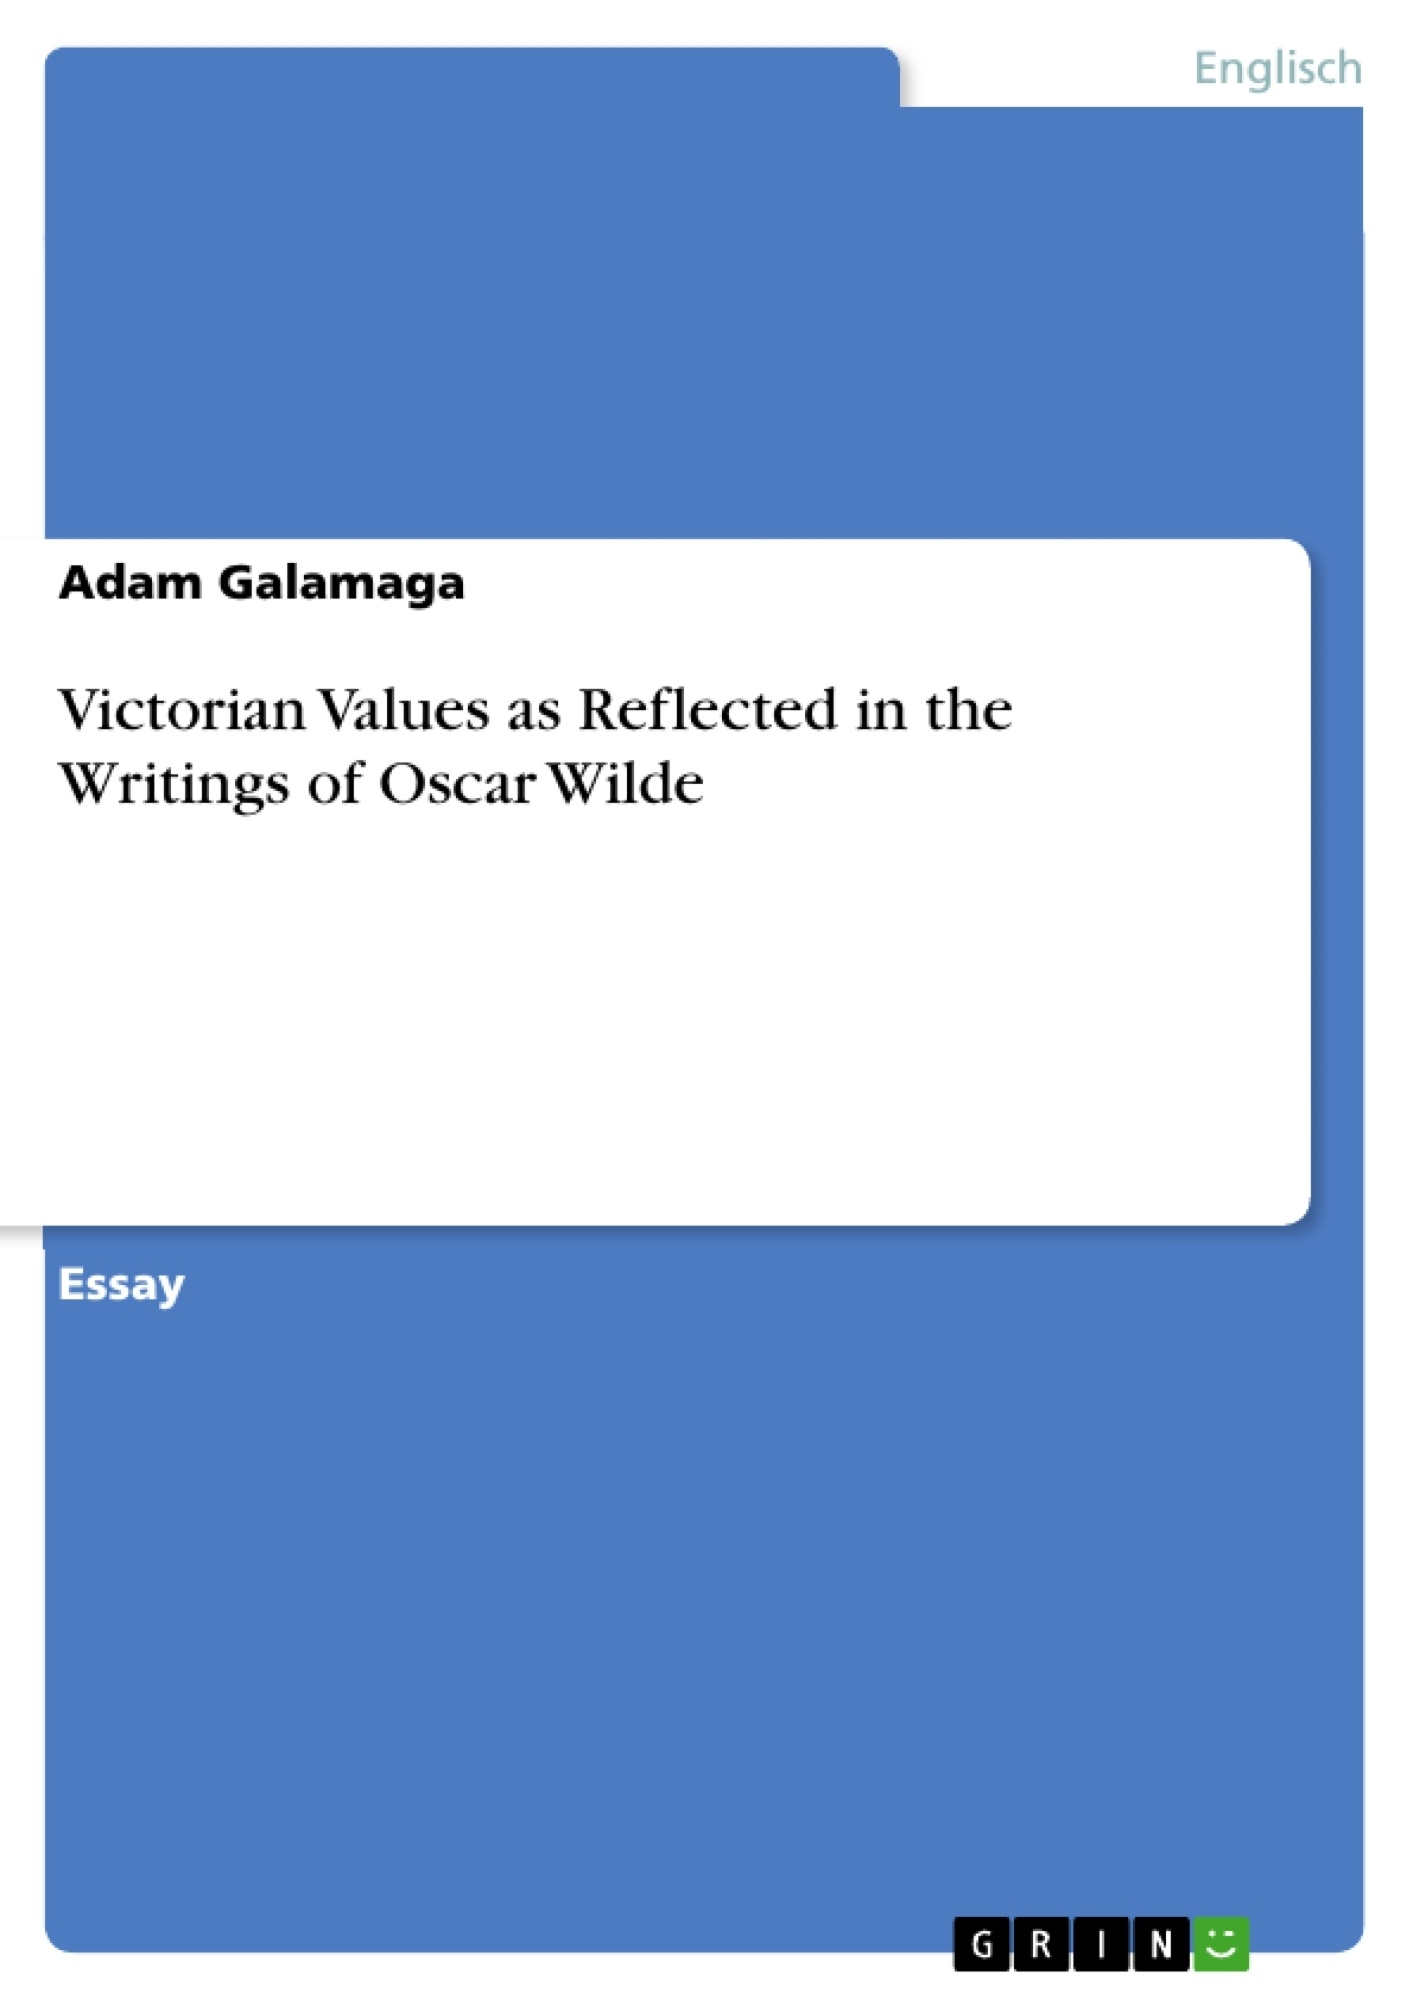 Titel: Victorian Values as Reflected in the Writings of Oscar Wilde